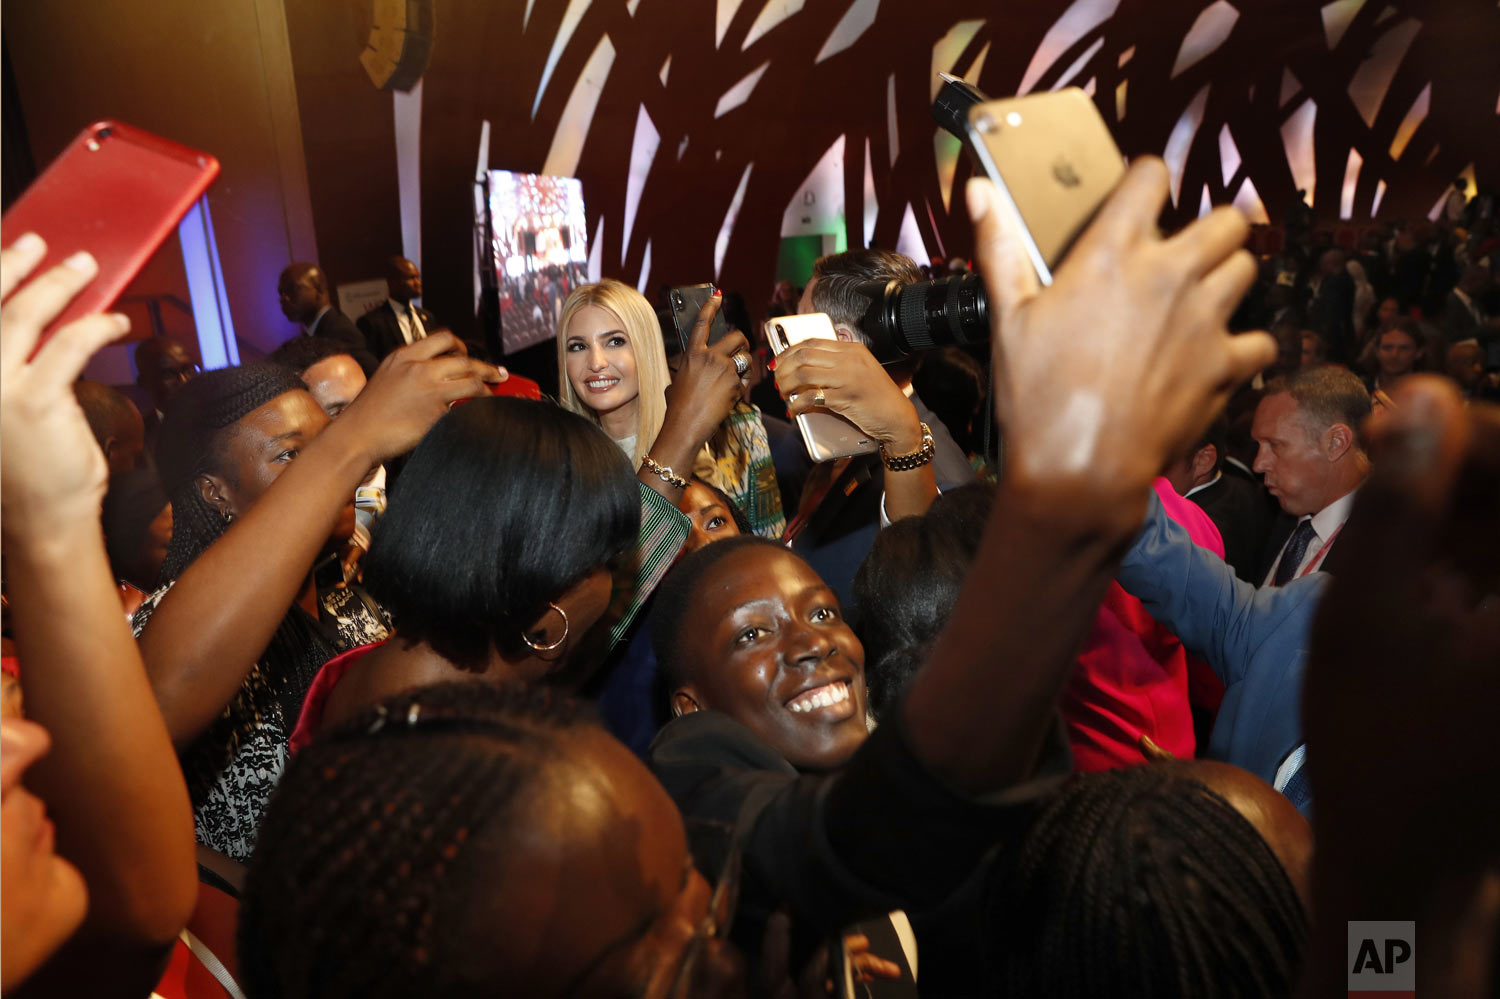 People crowd around U.S. White House senior adviser Ivanka Trump, back left, to take selfies with her at the end of the Women Entrepreneurs Finance Initative, or We-Fi, event sponsored by the World Bank Group, Wednesday, April 17, 2019, in Abidjan, Ivory Coast. Ivanka Trump is promoting a White House global economic program for women. (AP Photo/Jacquelyn Martin)